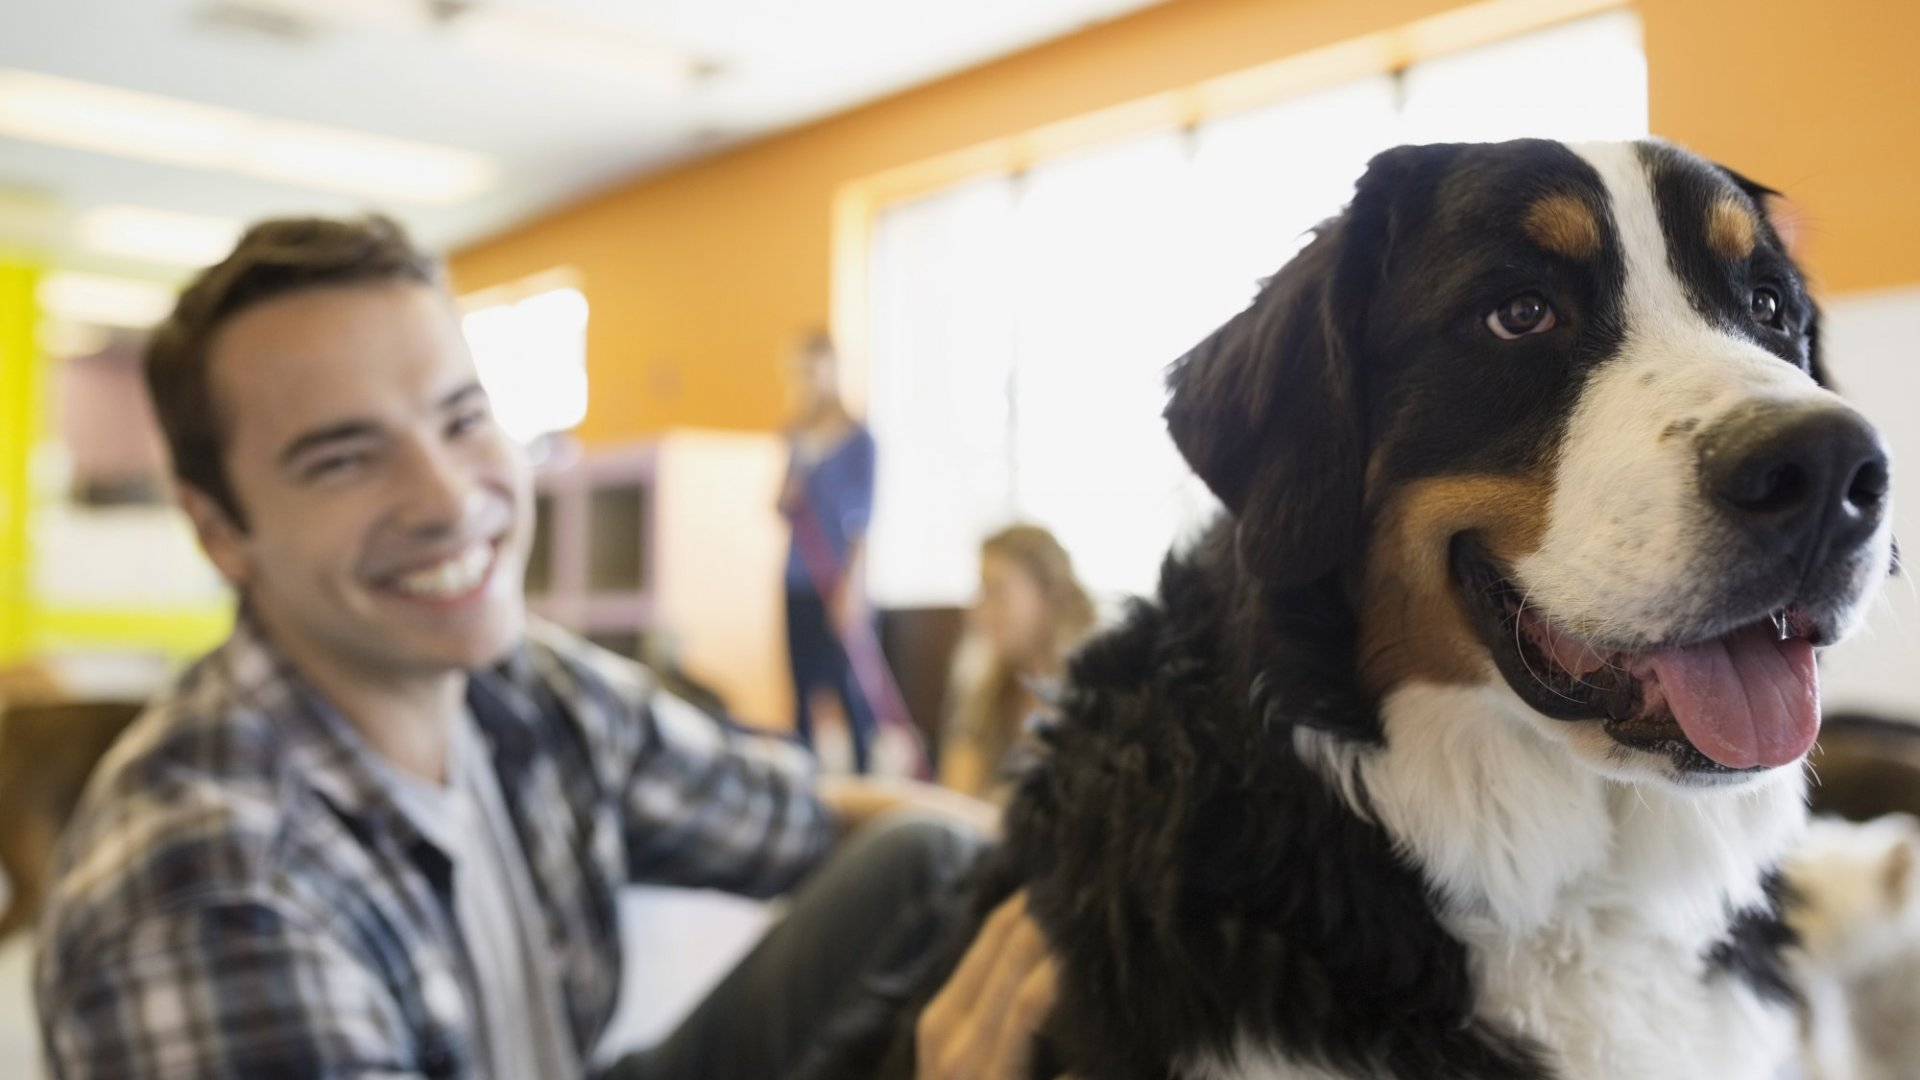 6 Reasons Why Allowing Your Dog to Come to Work Makes Perfect Business Sense